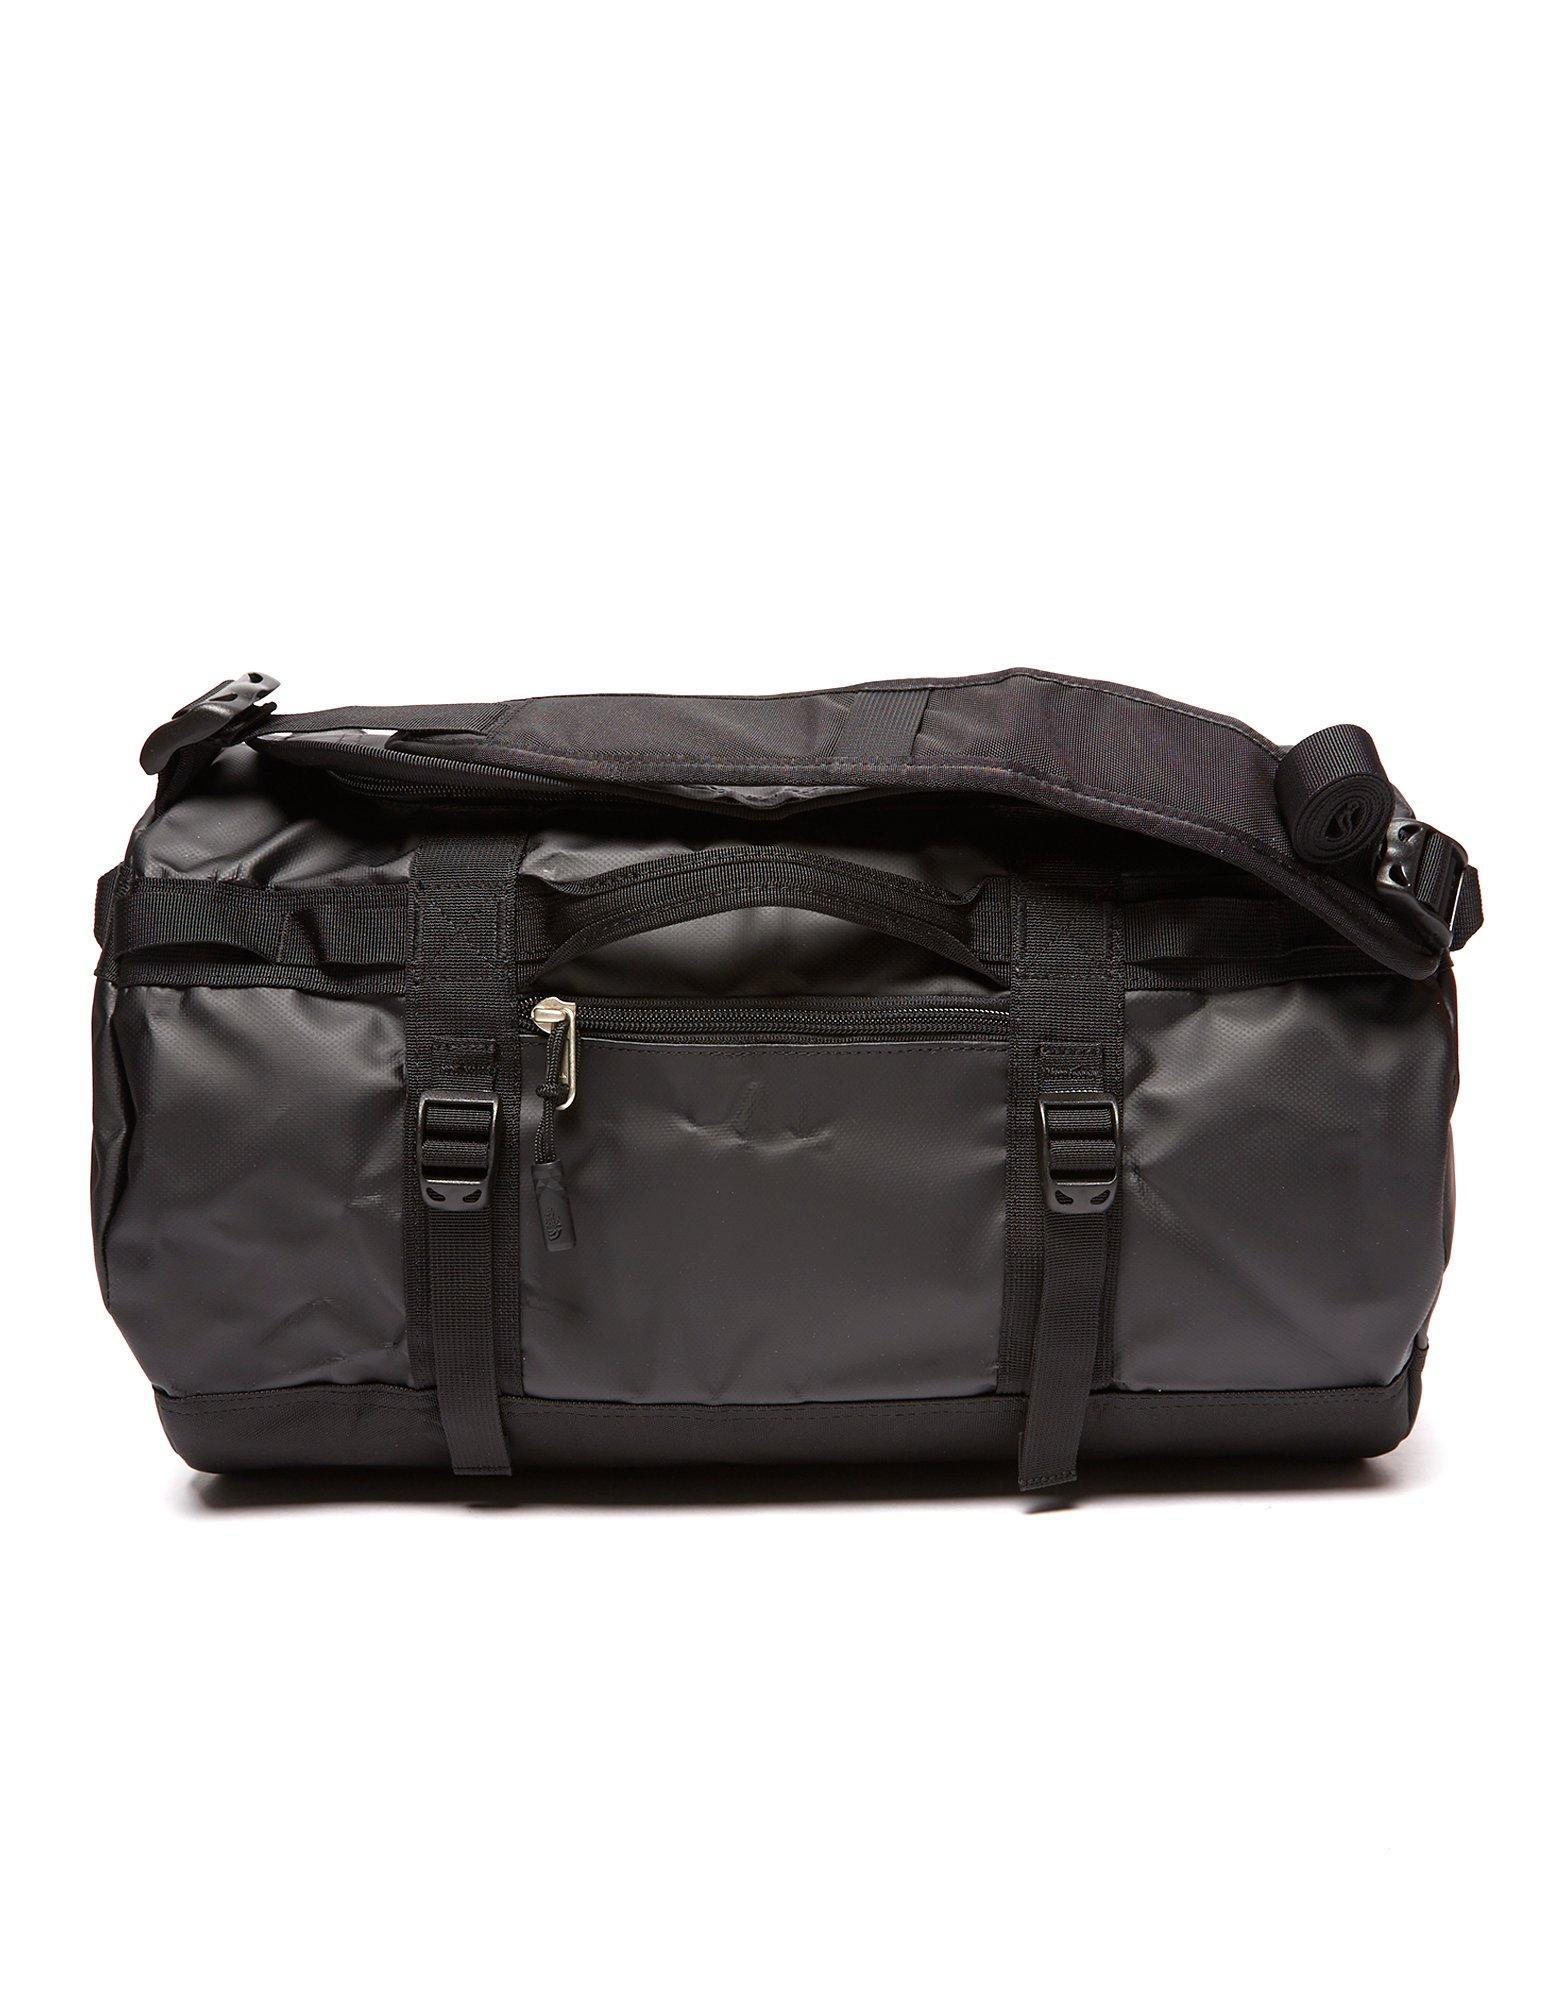 9a9fdfce0f The North Face Large Base Camp Duffle Bag in Black for Men - Save 24 ...